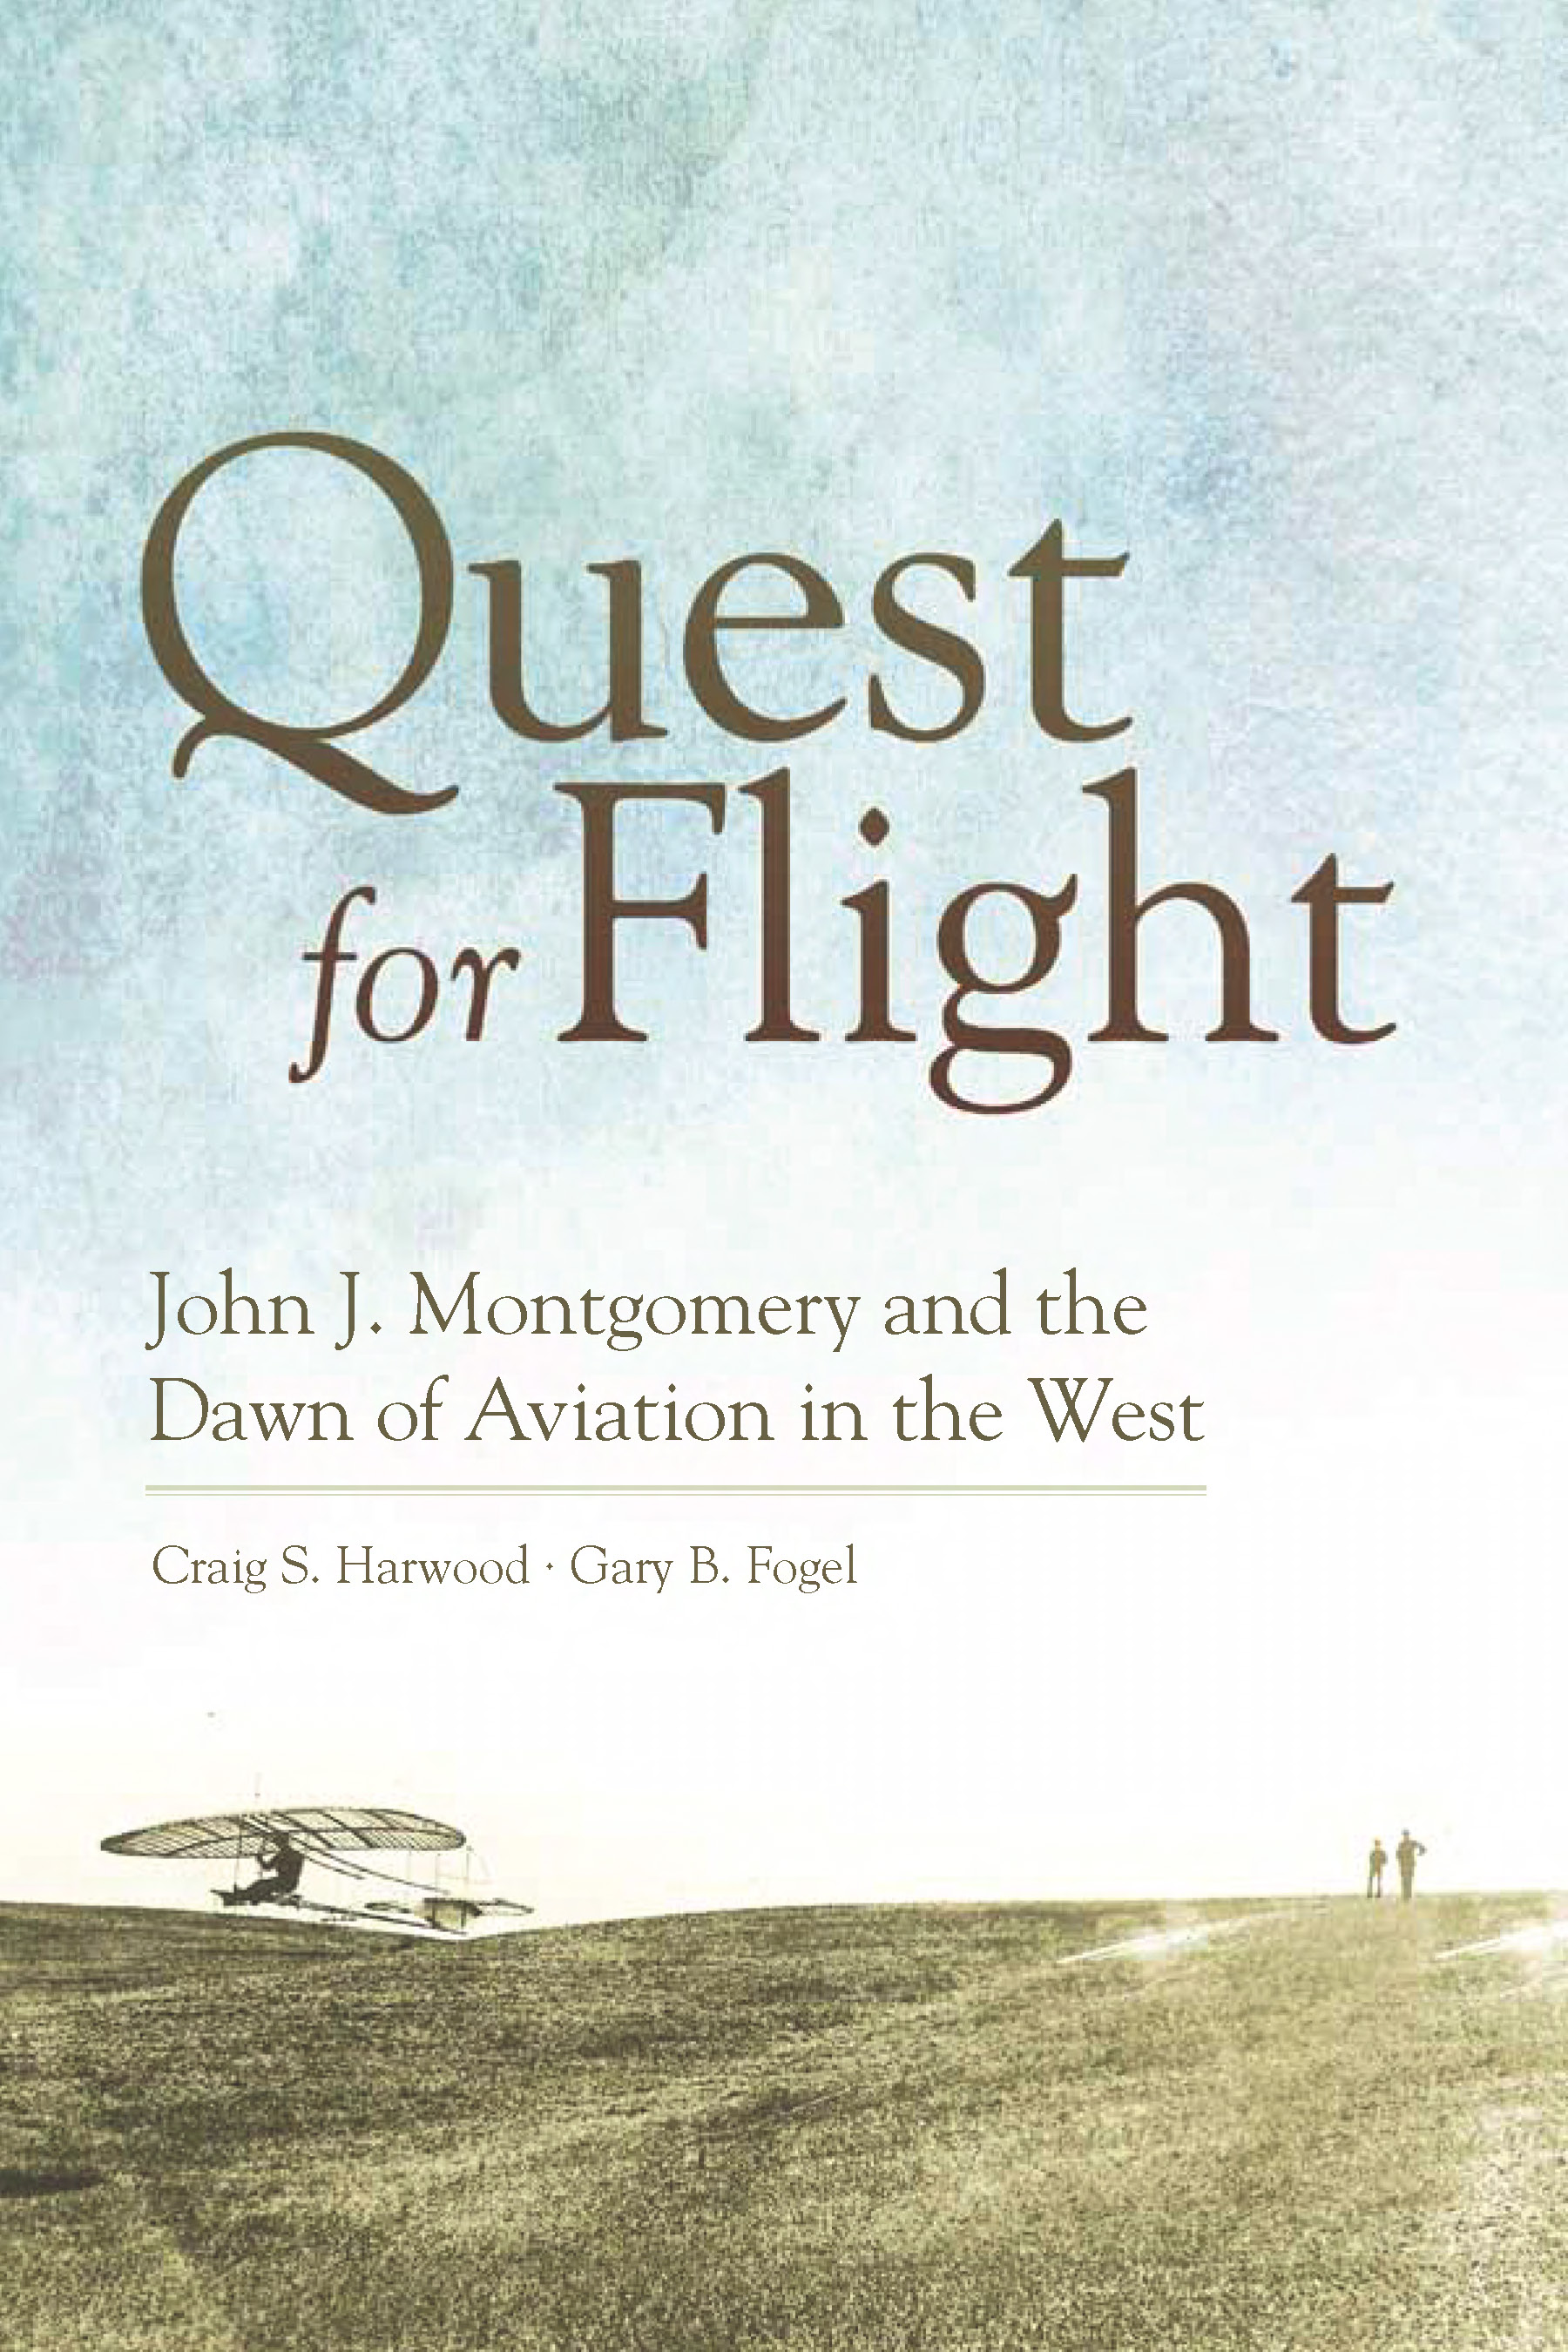 Quest for Flight - Local Author Talk by Craig Harwood